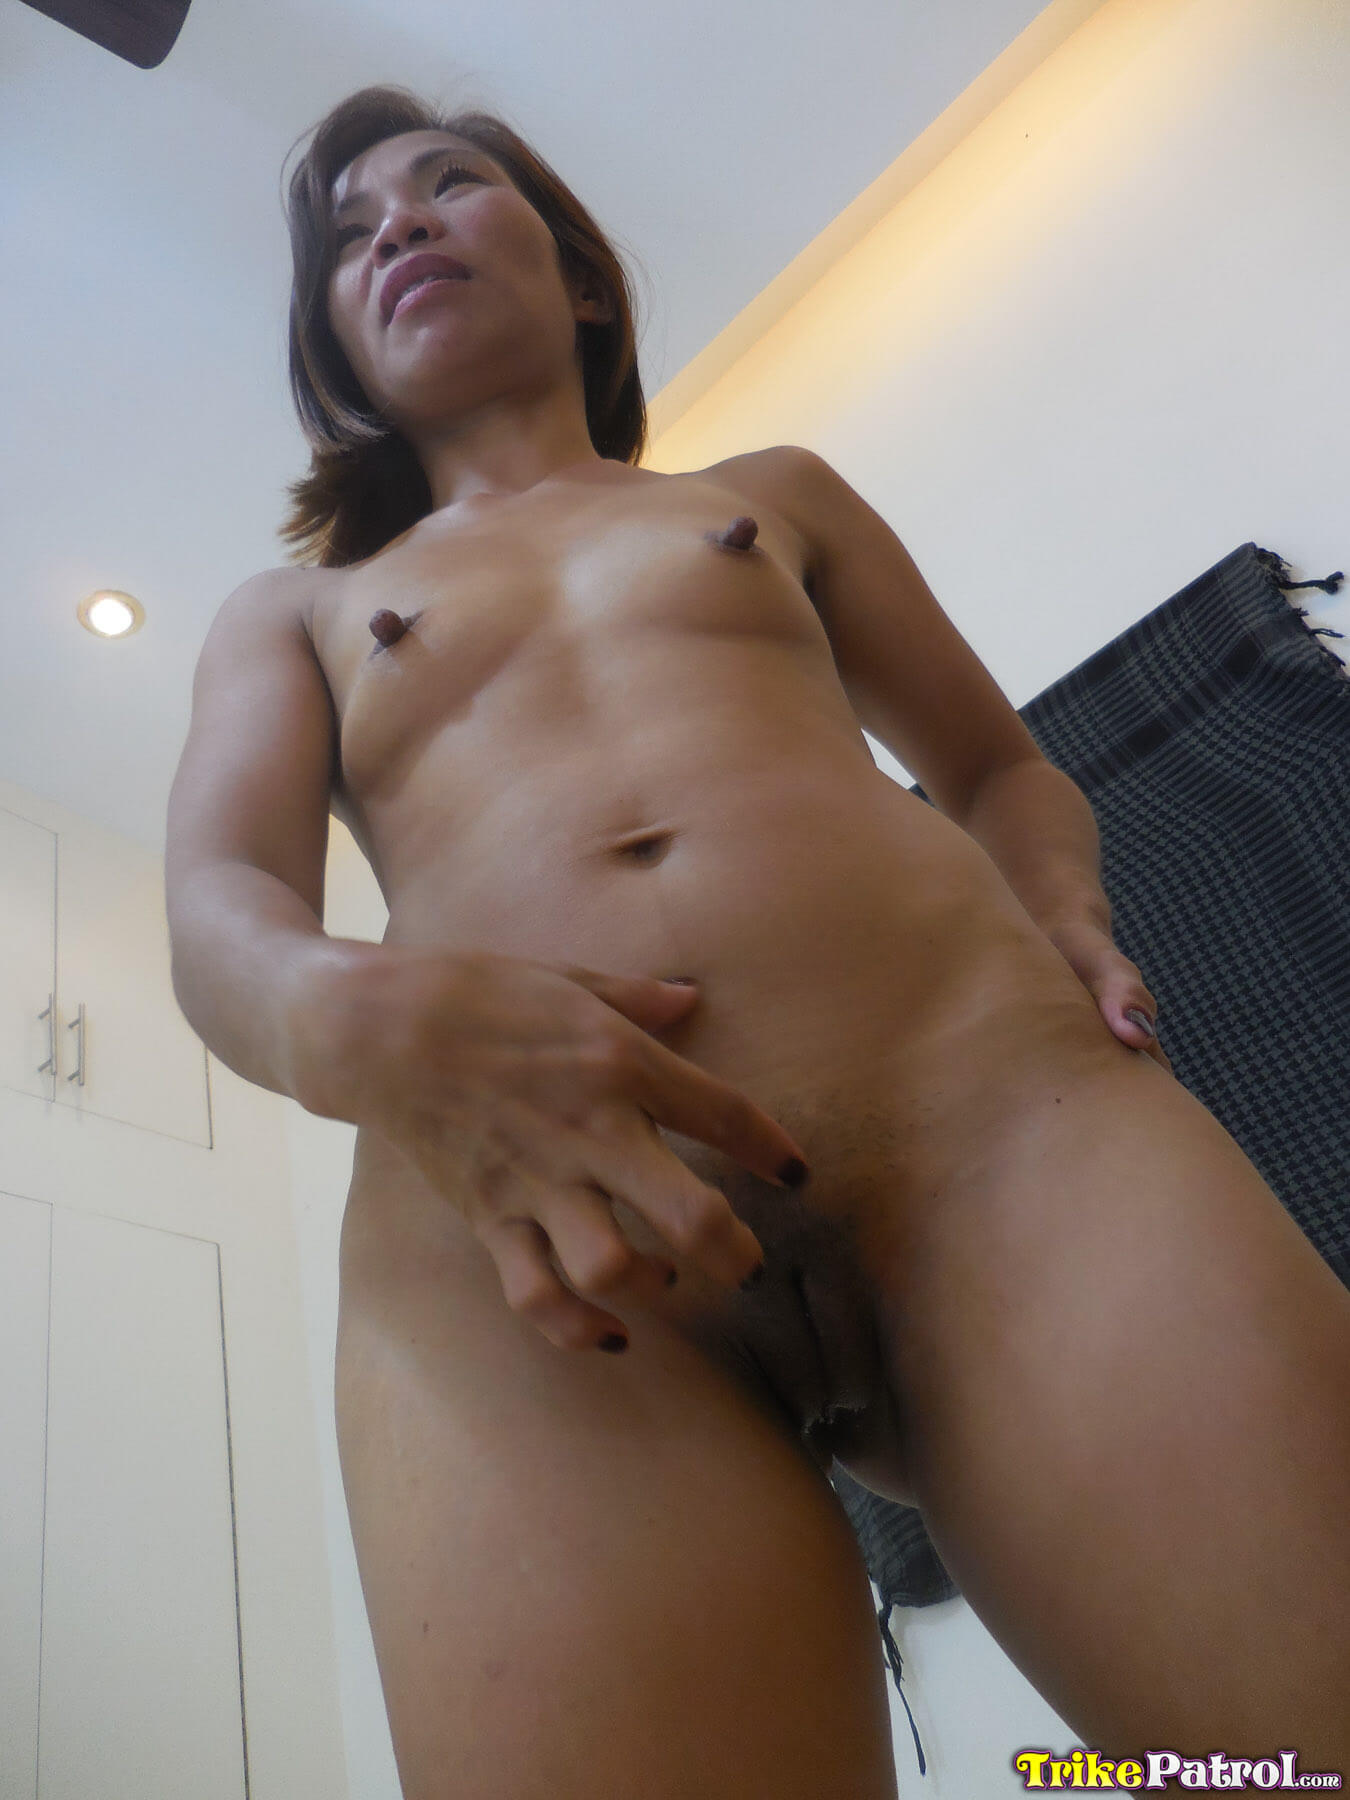 30 year old filipina milf shows her nice boobs and pussy 2